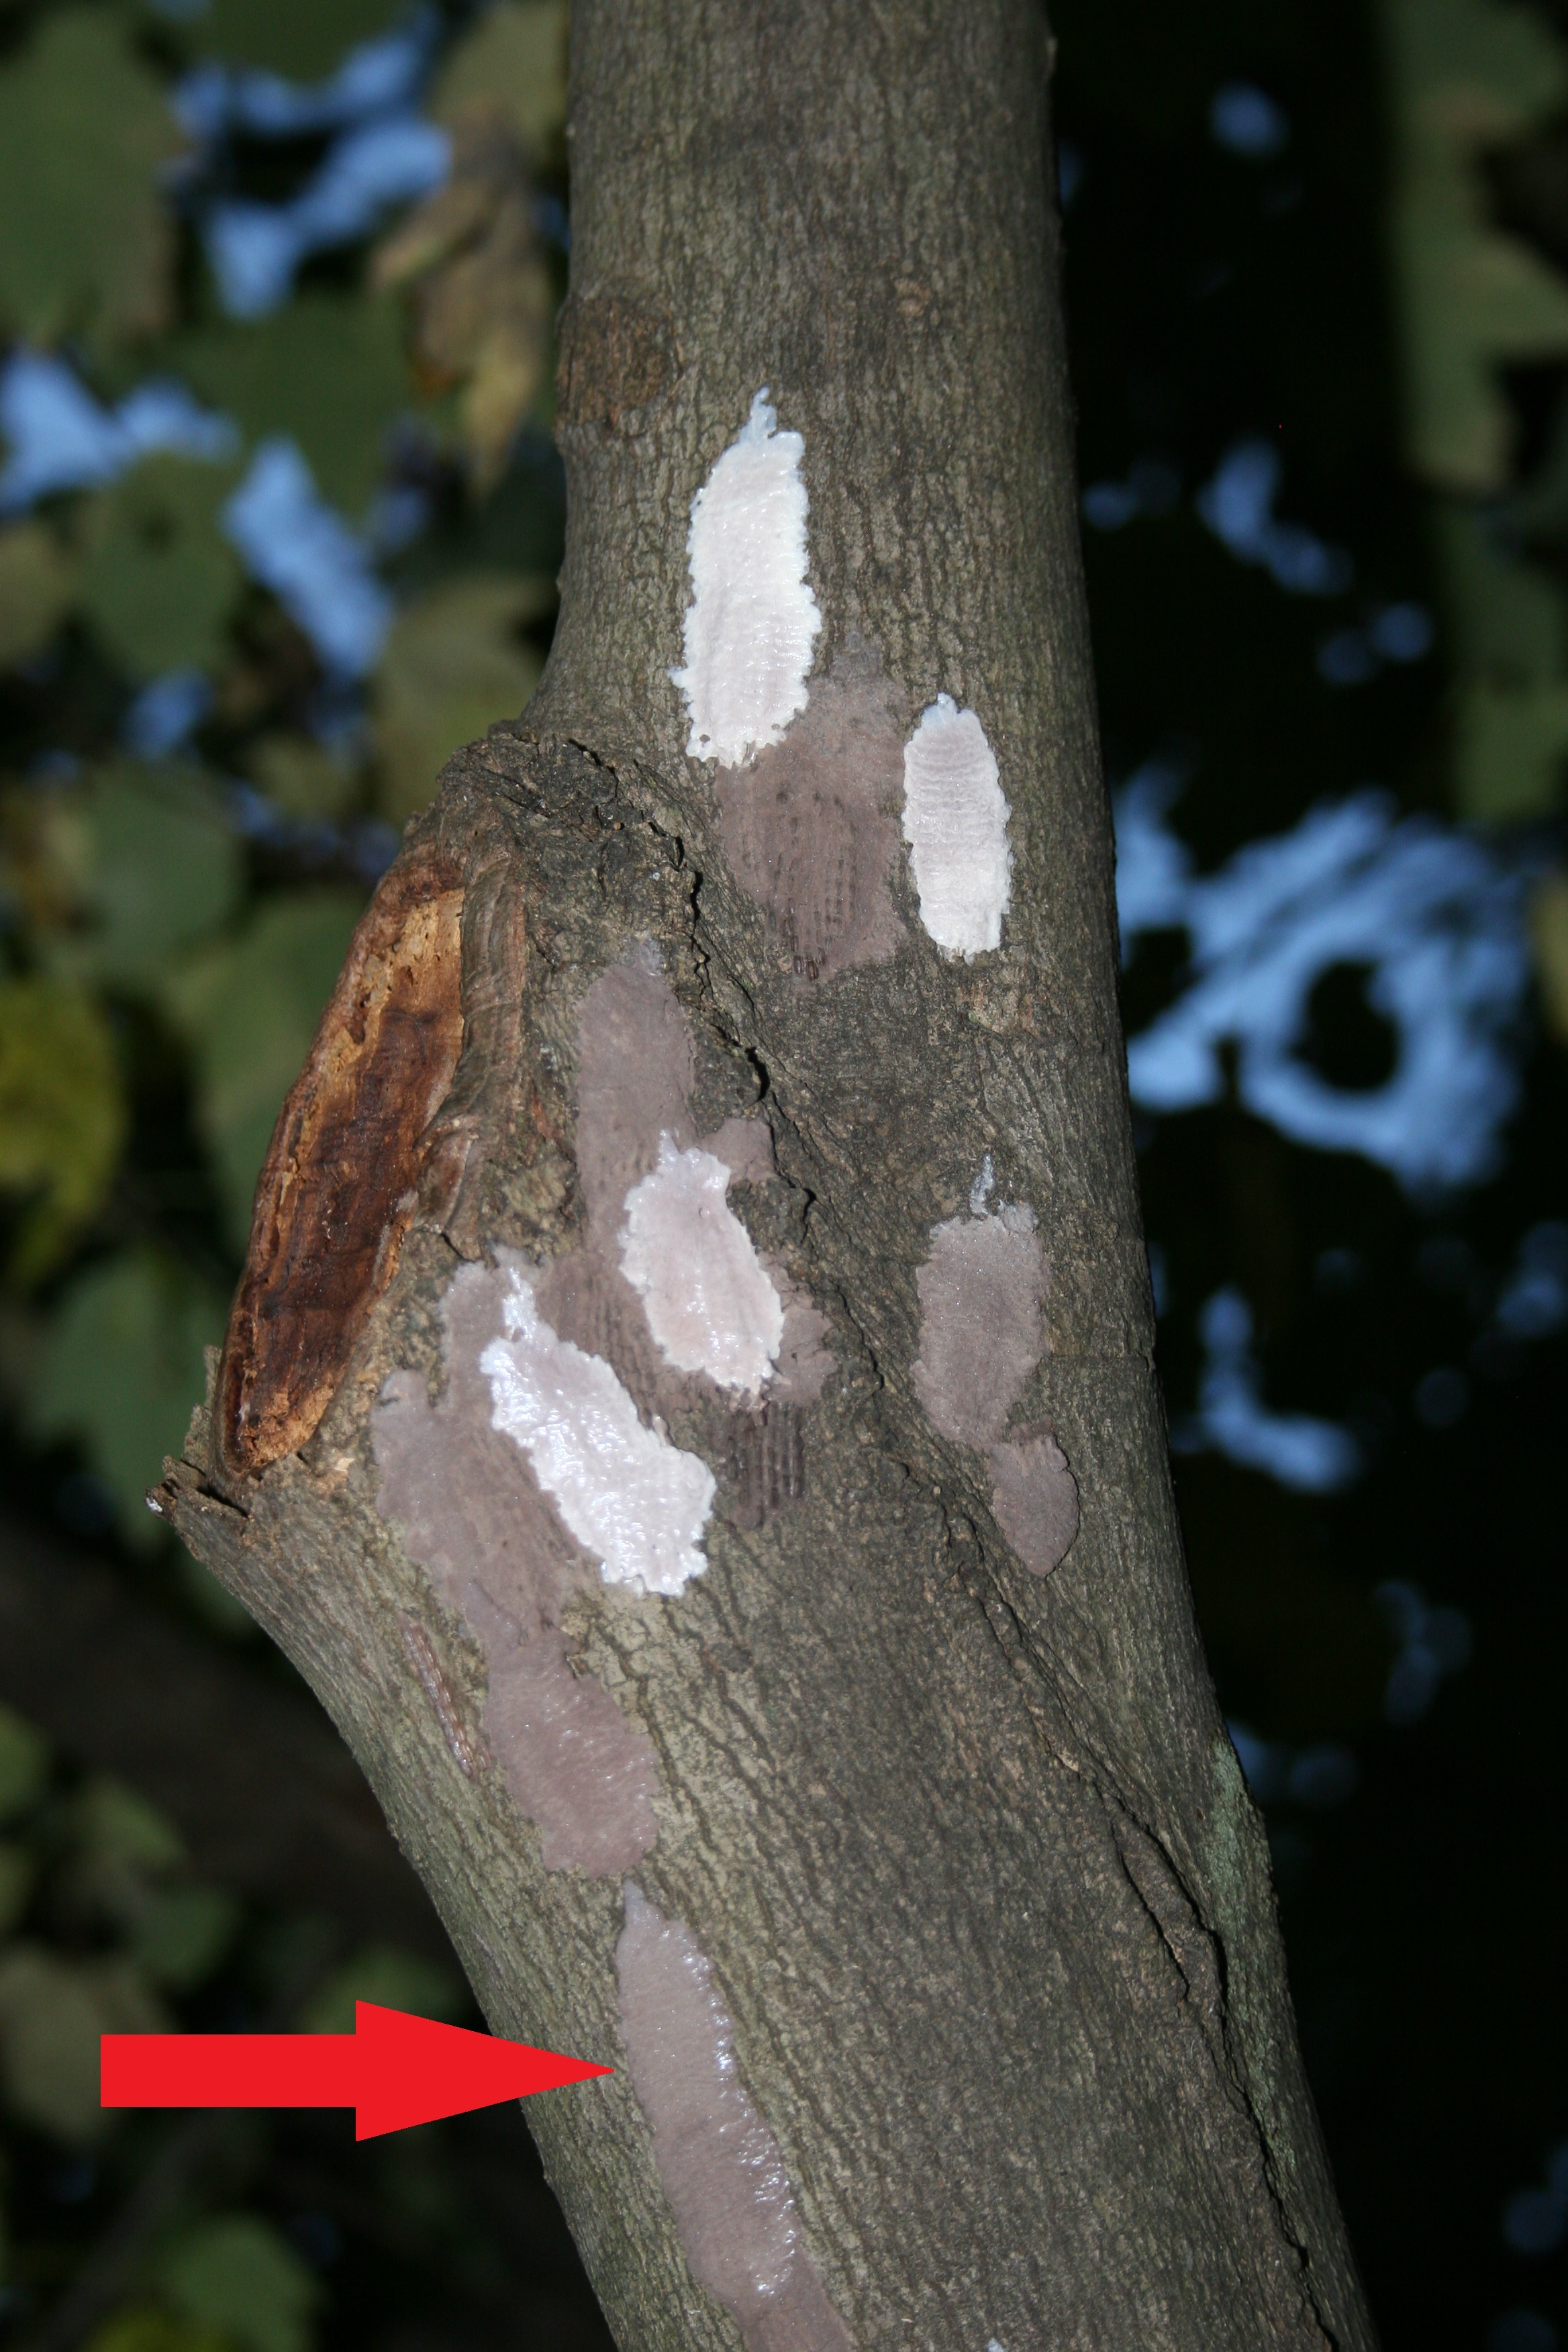 Spotted lanternfly egg masses on a tree branch.